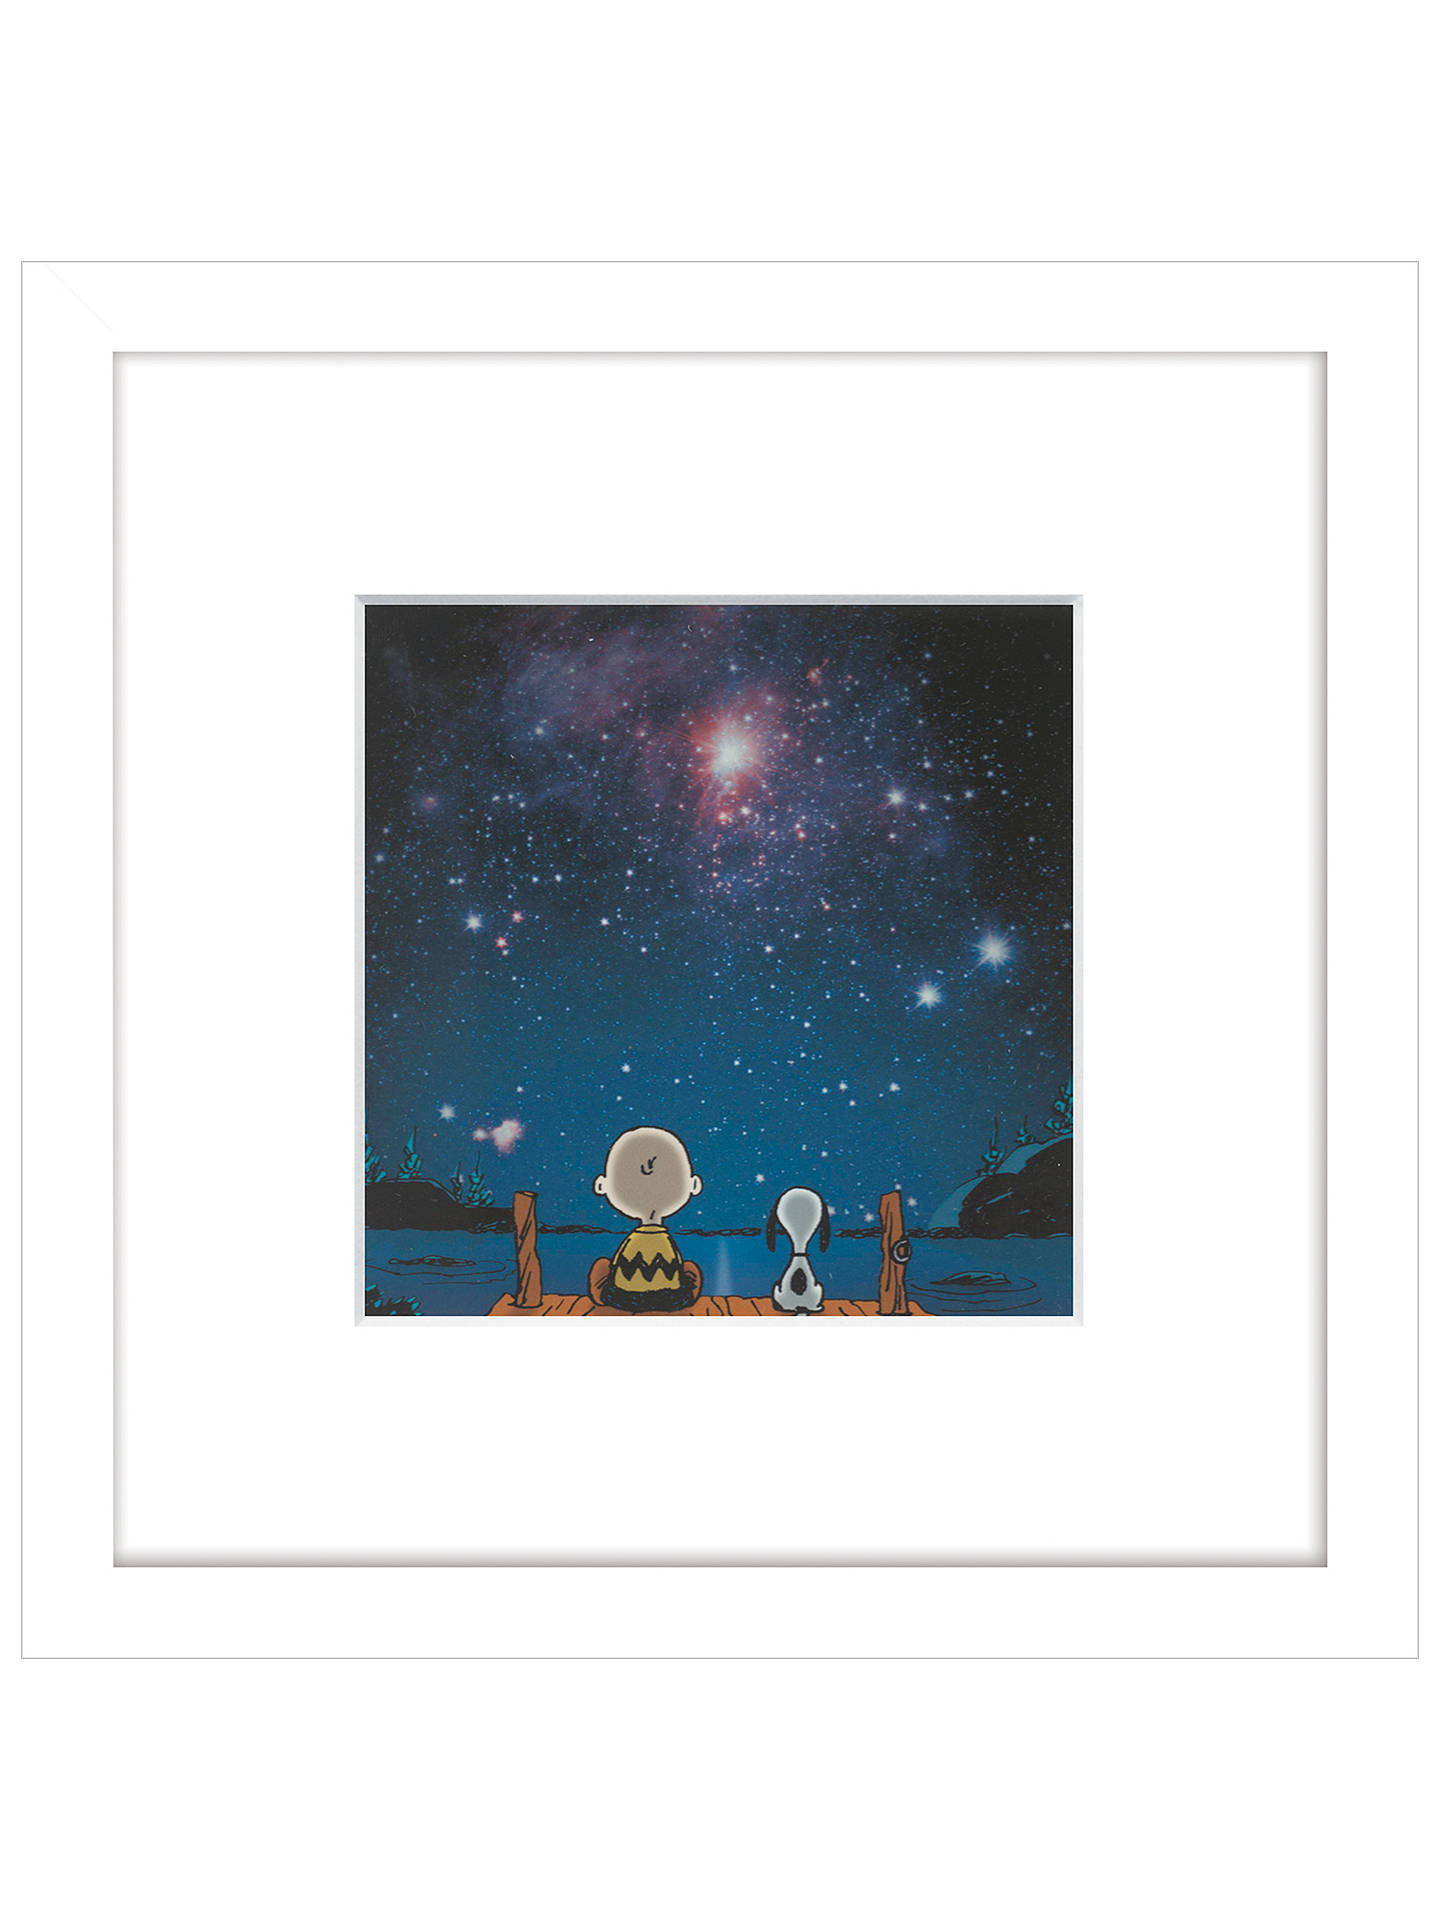 Peanuts Snoopy And Charlie Stargazing Framed Print 23